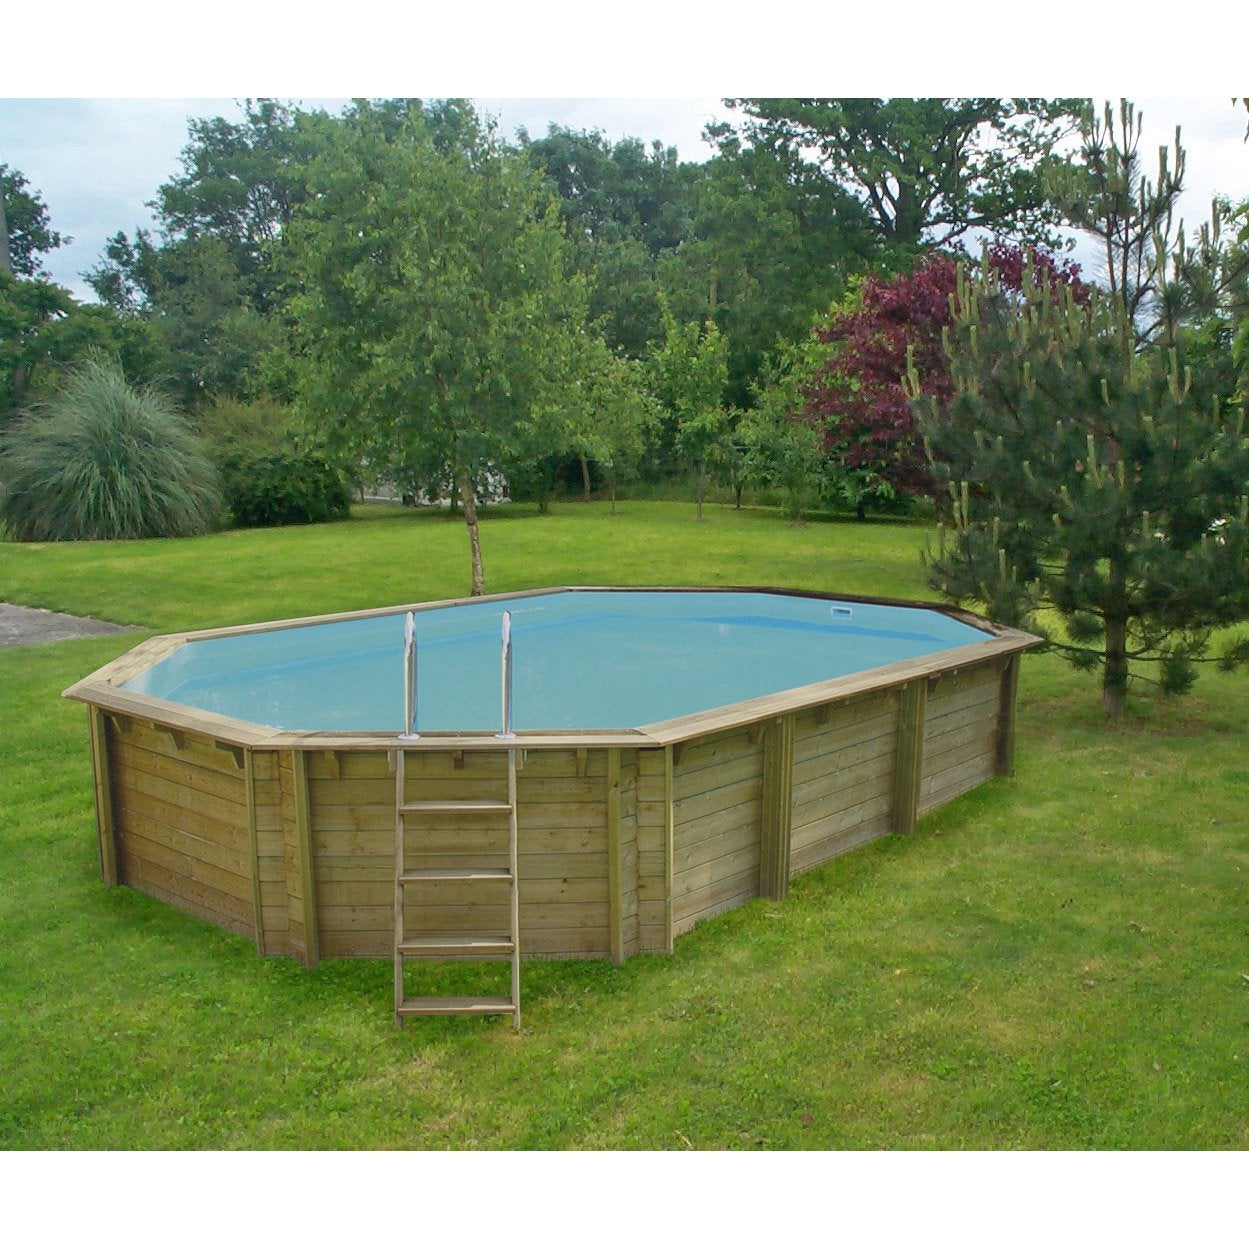 Piscine hors sol bois weva proswell by procopi l 6 4 x l for Piscine hors sol enterrable